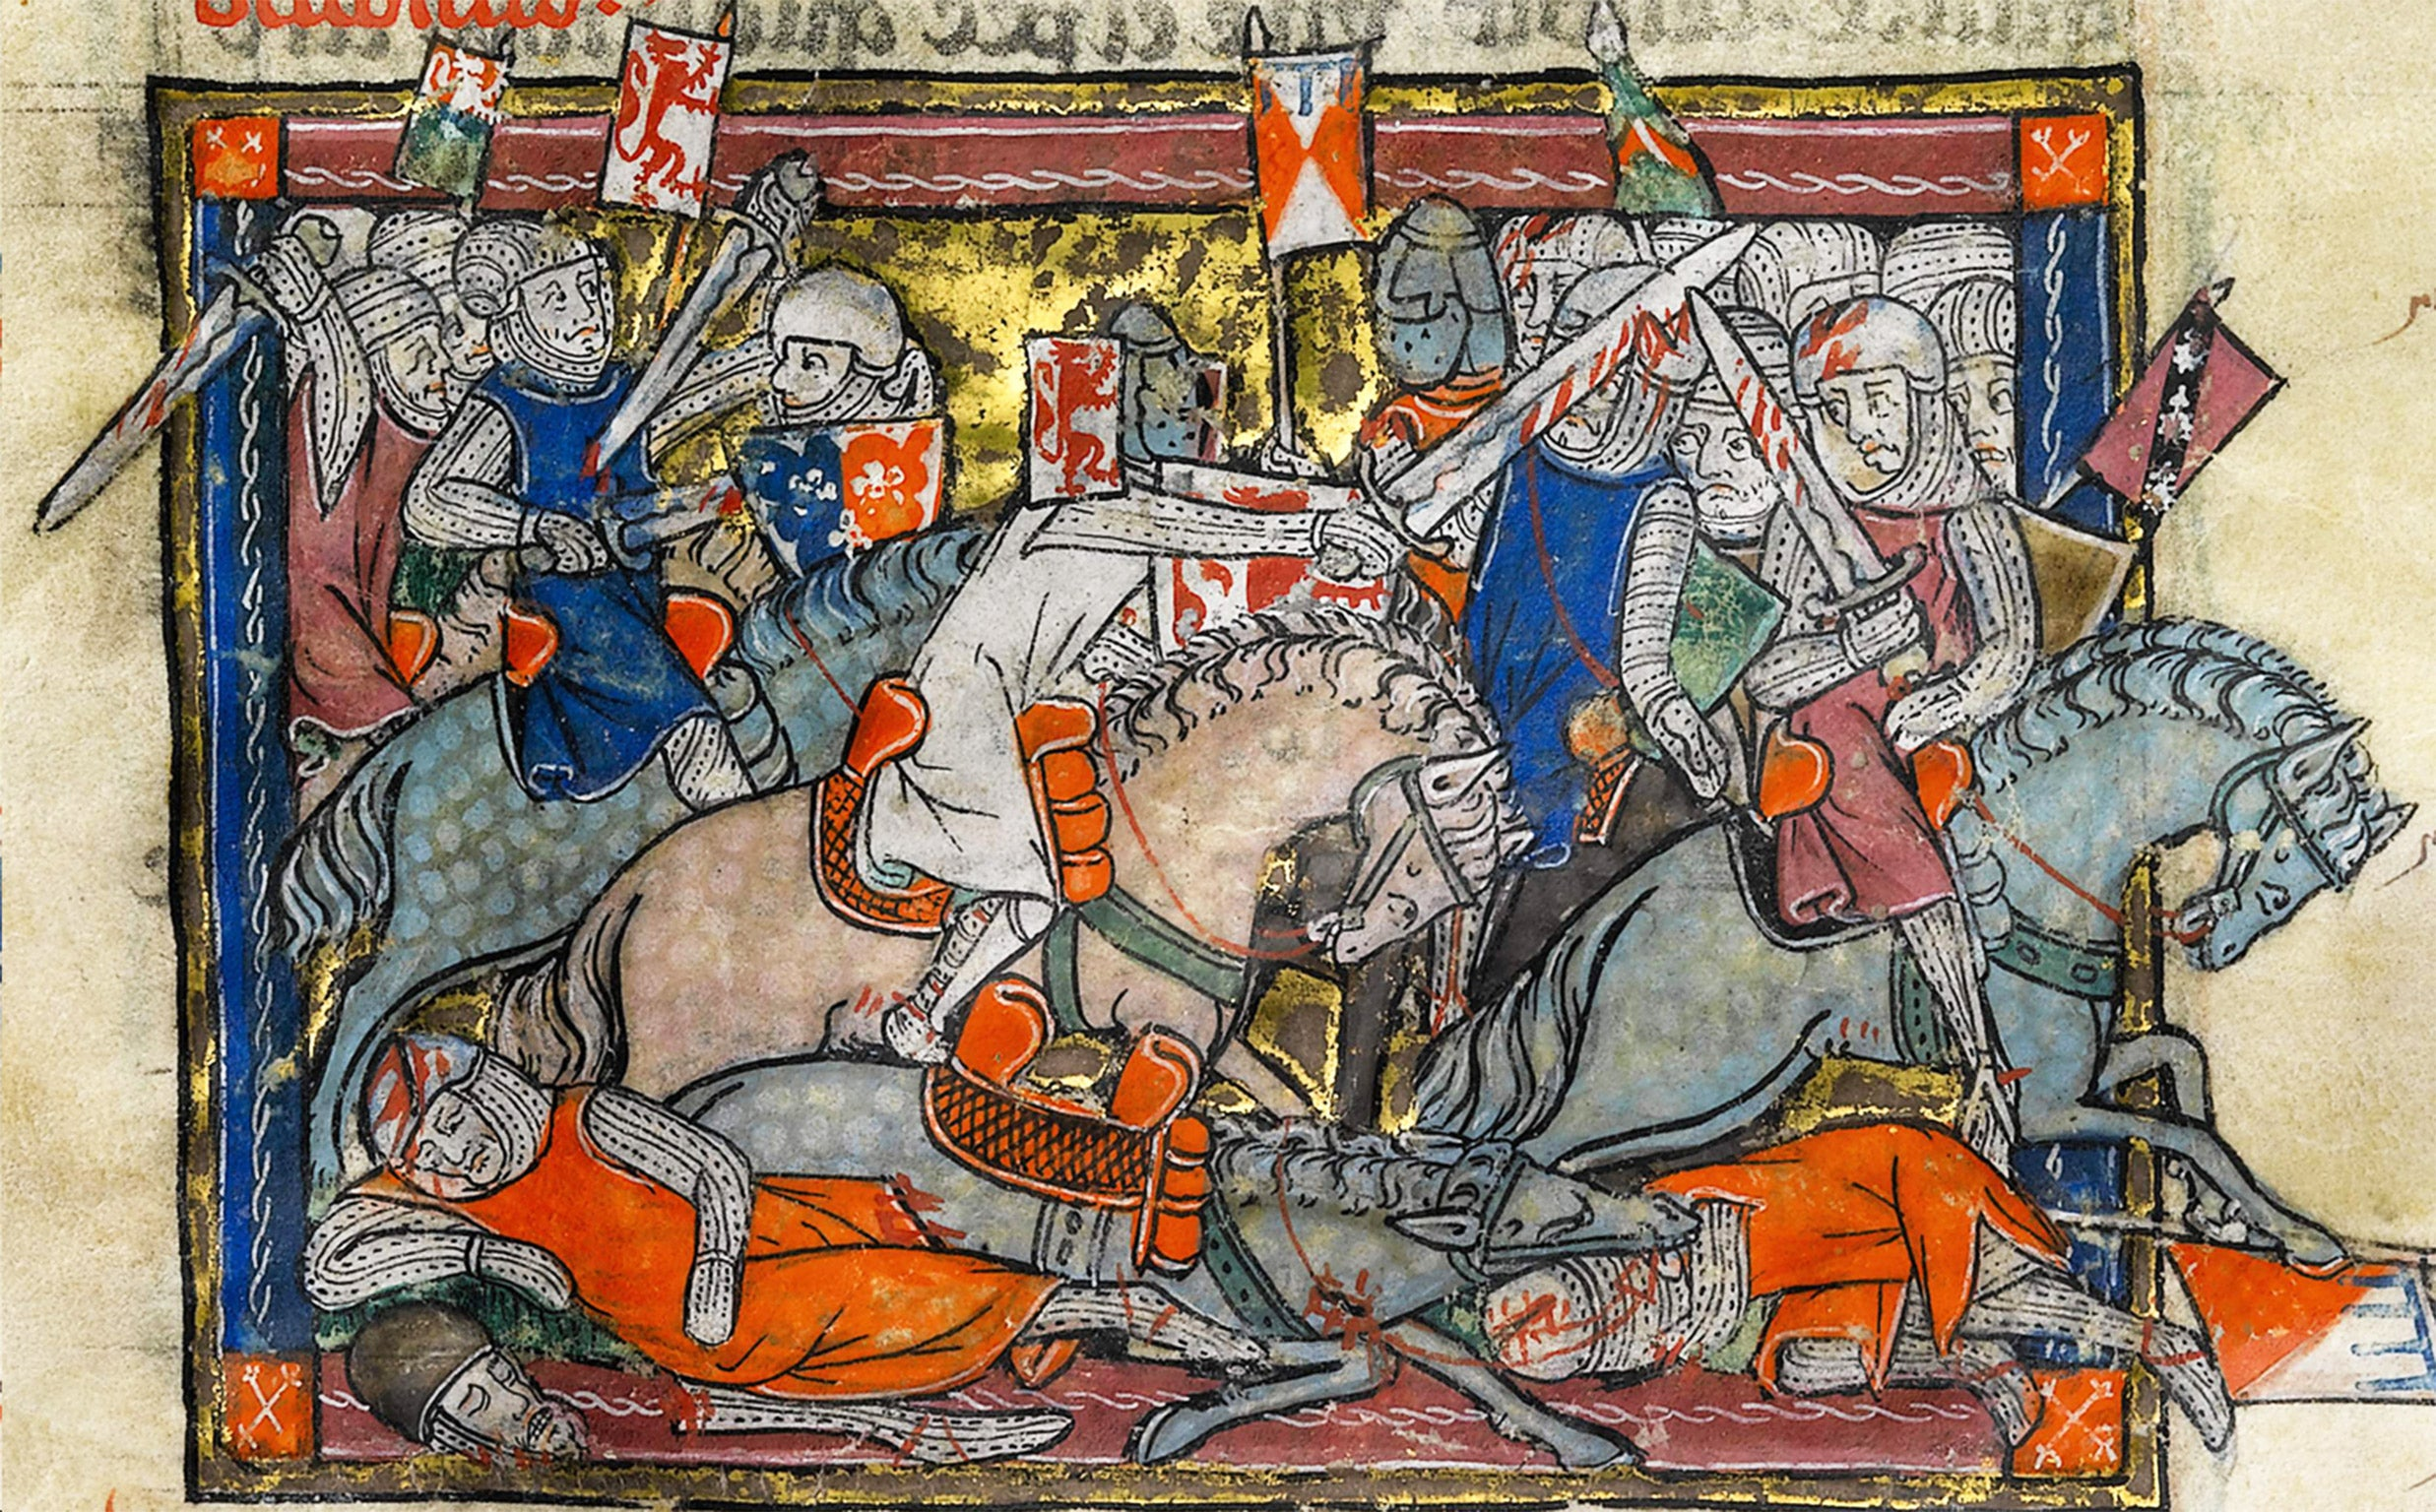 a literary analysis of the legends of king arthur of britain and his knights of the round table